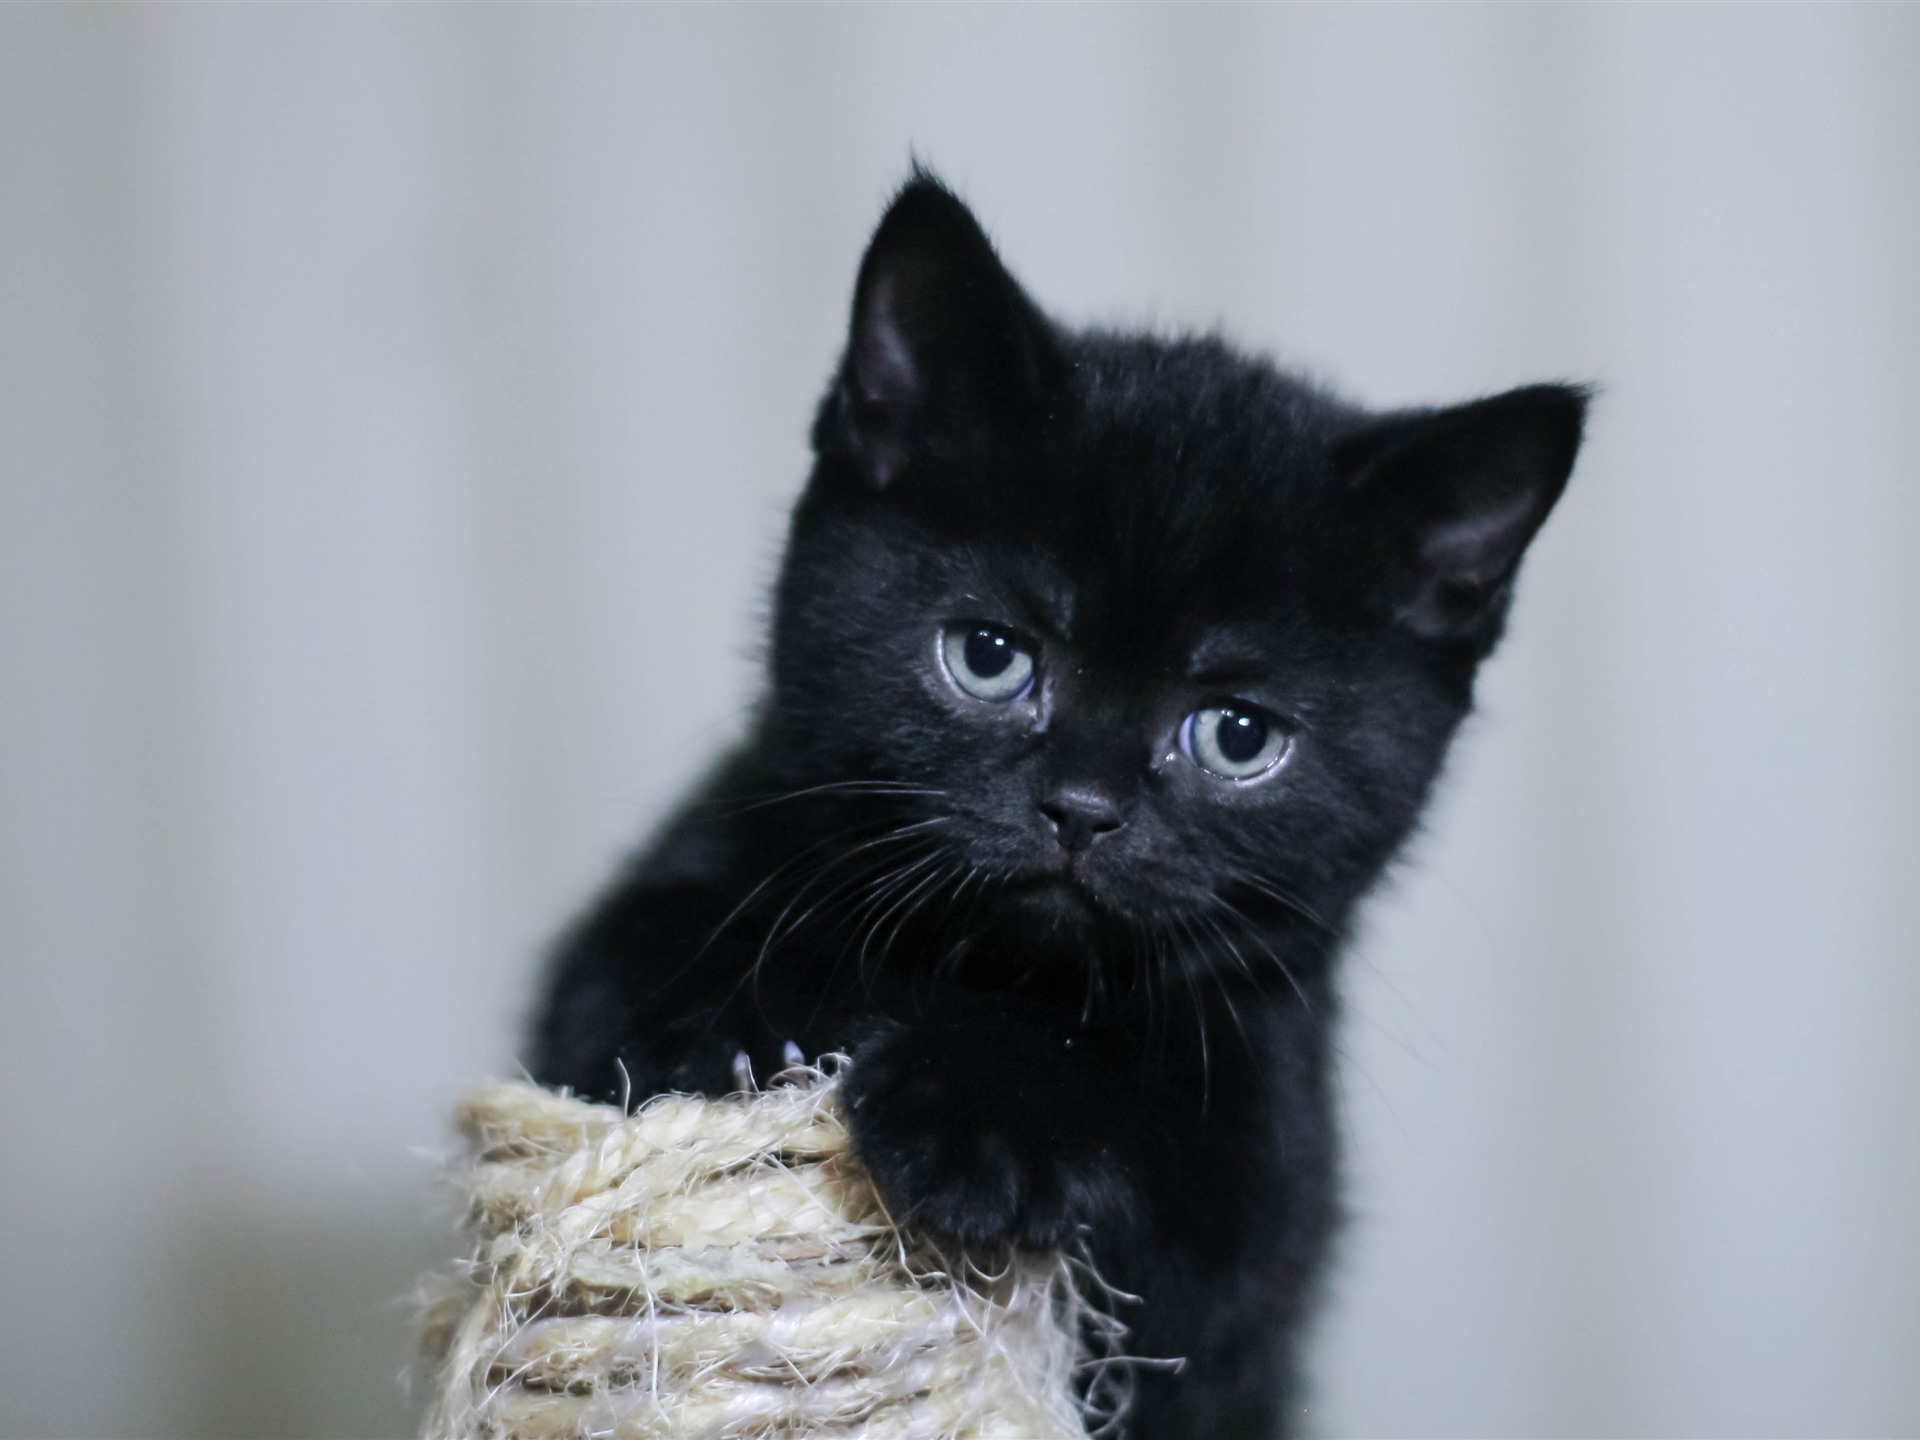 Wallpaper Black Kitten Fluffy 3840x2160 Uhd 4k Picture Image